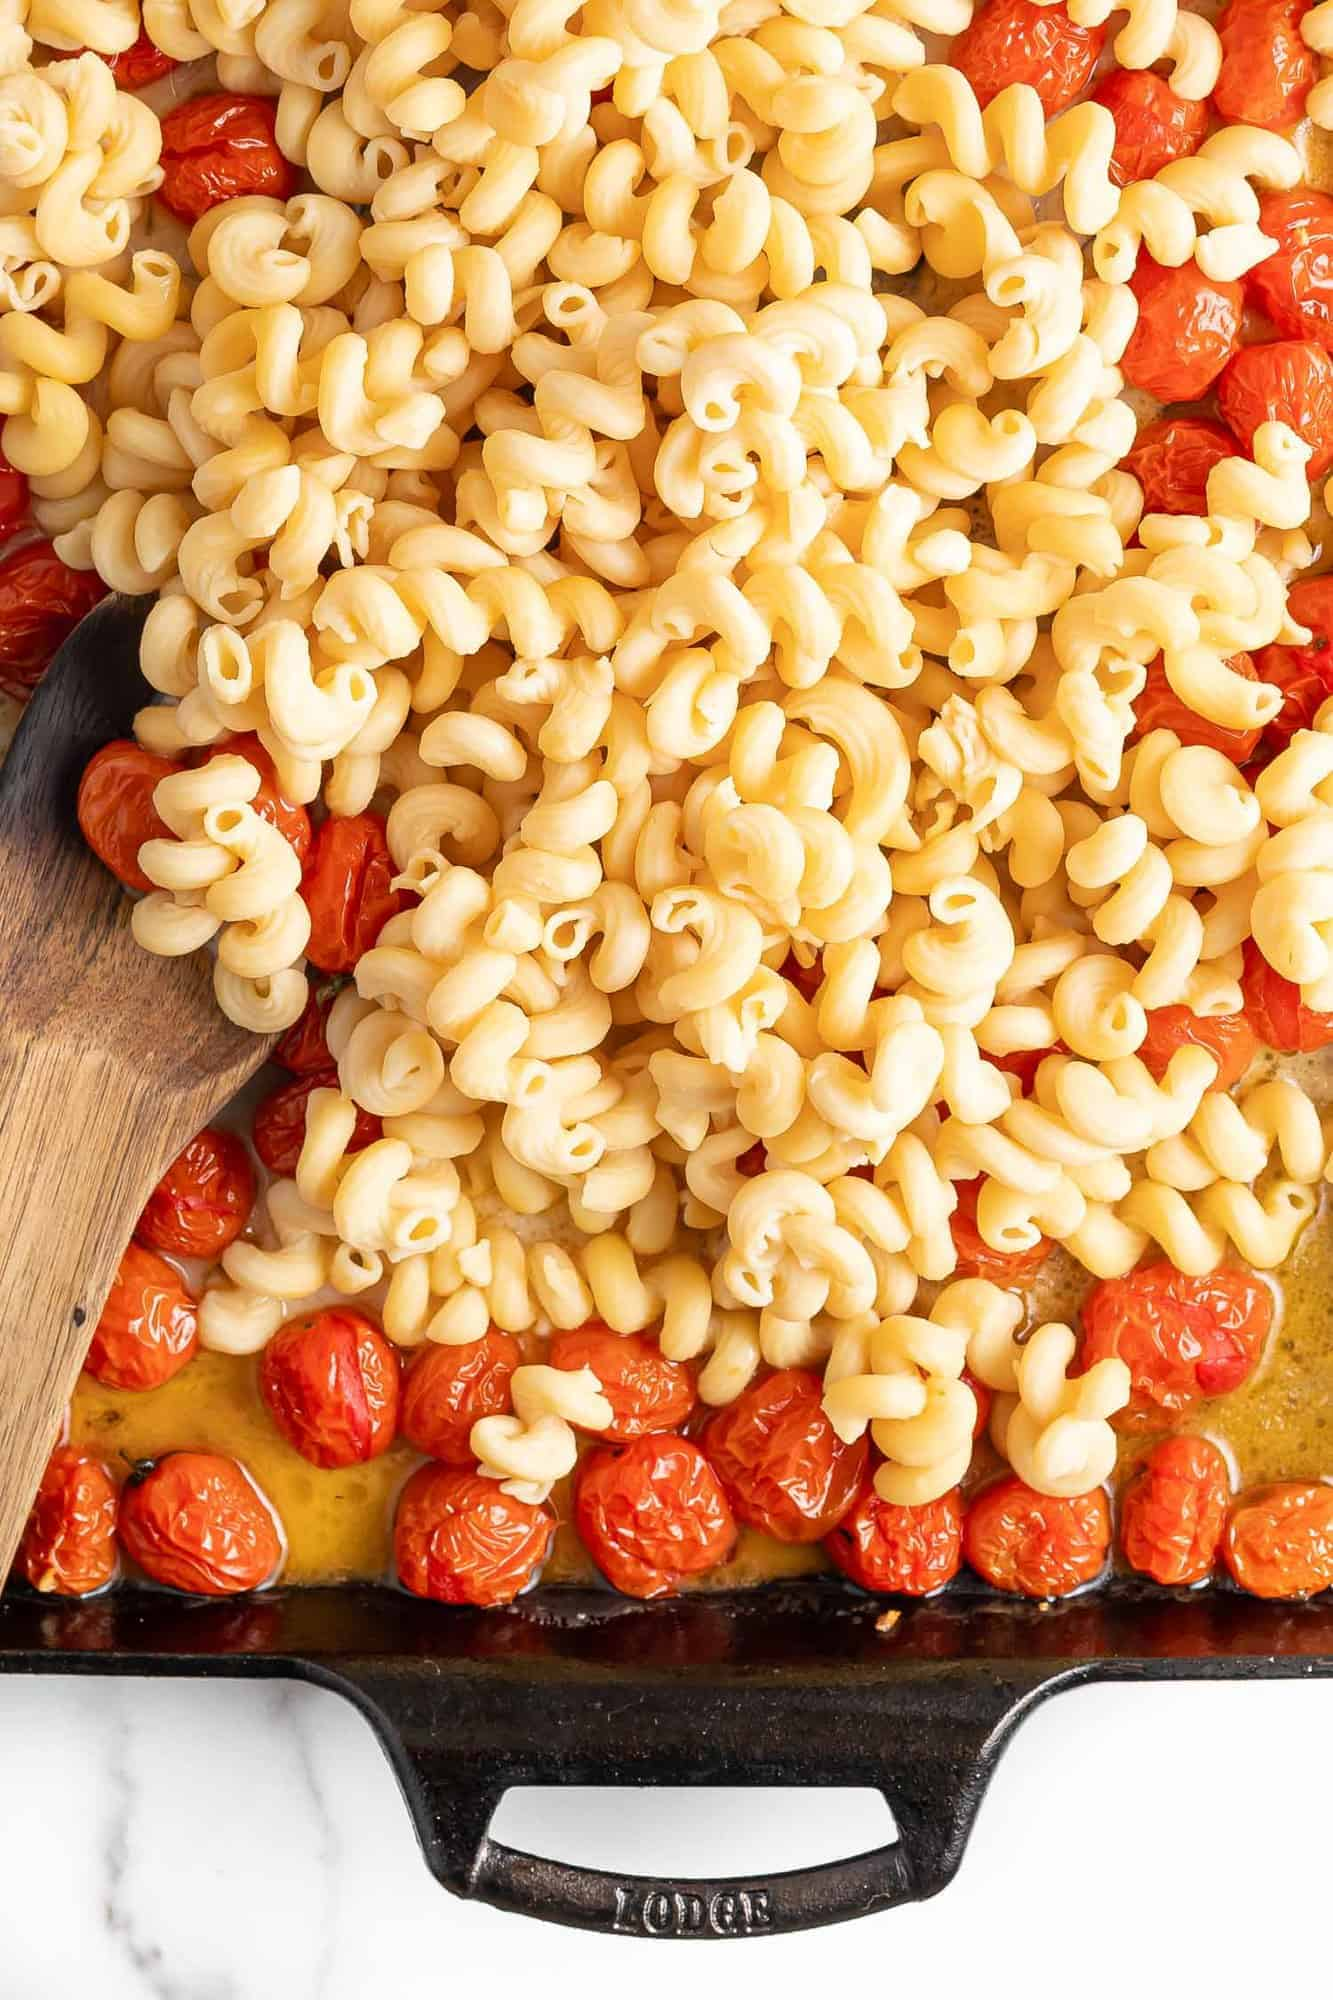 Pasta being stirred into roasted tomatoes and feta in a baking dish.